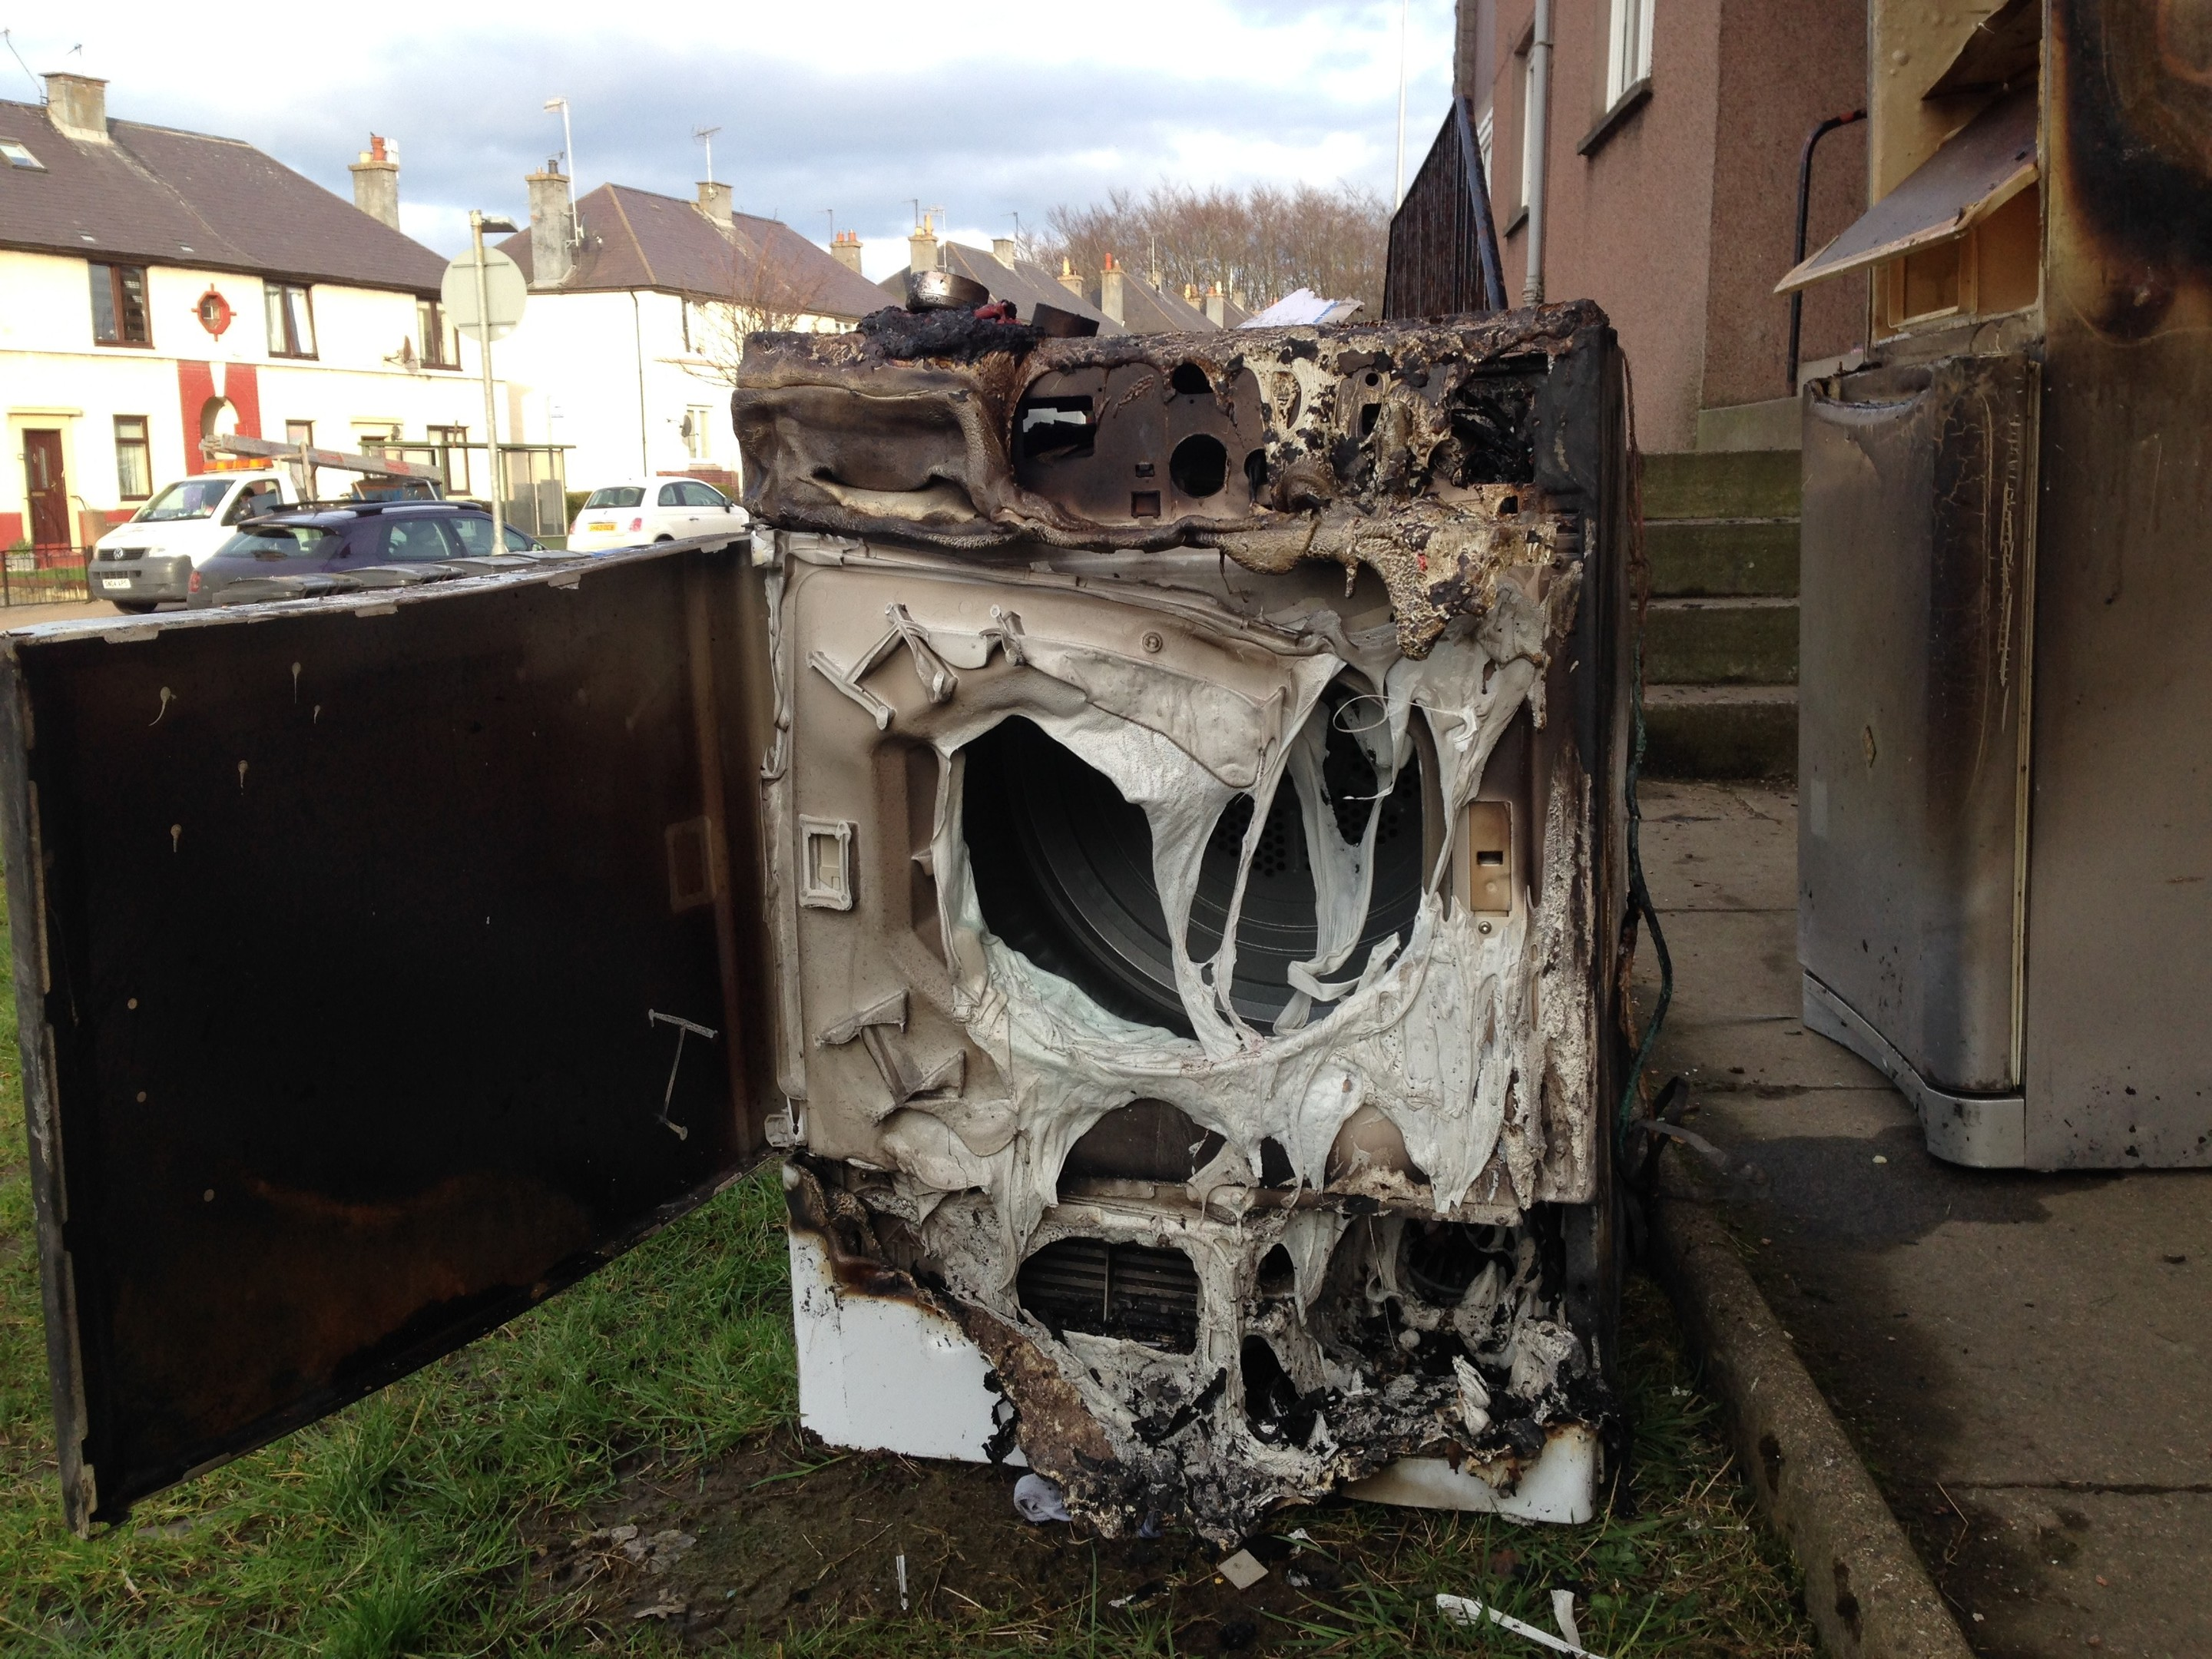 The remains of the tumble  dryer.